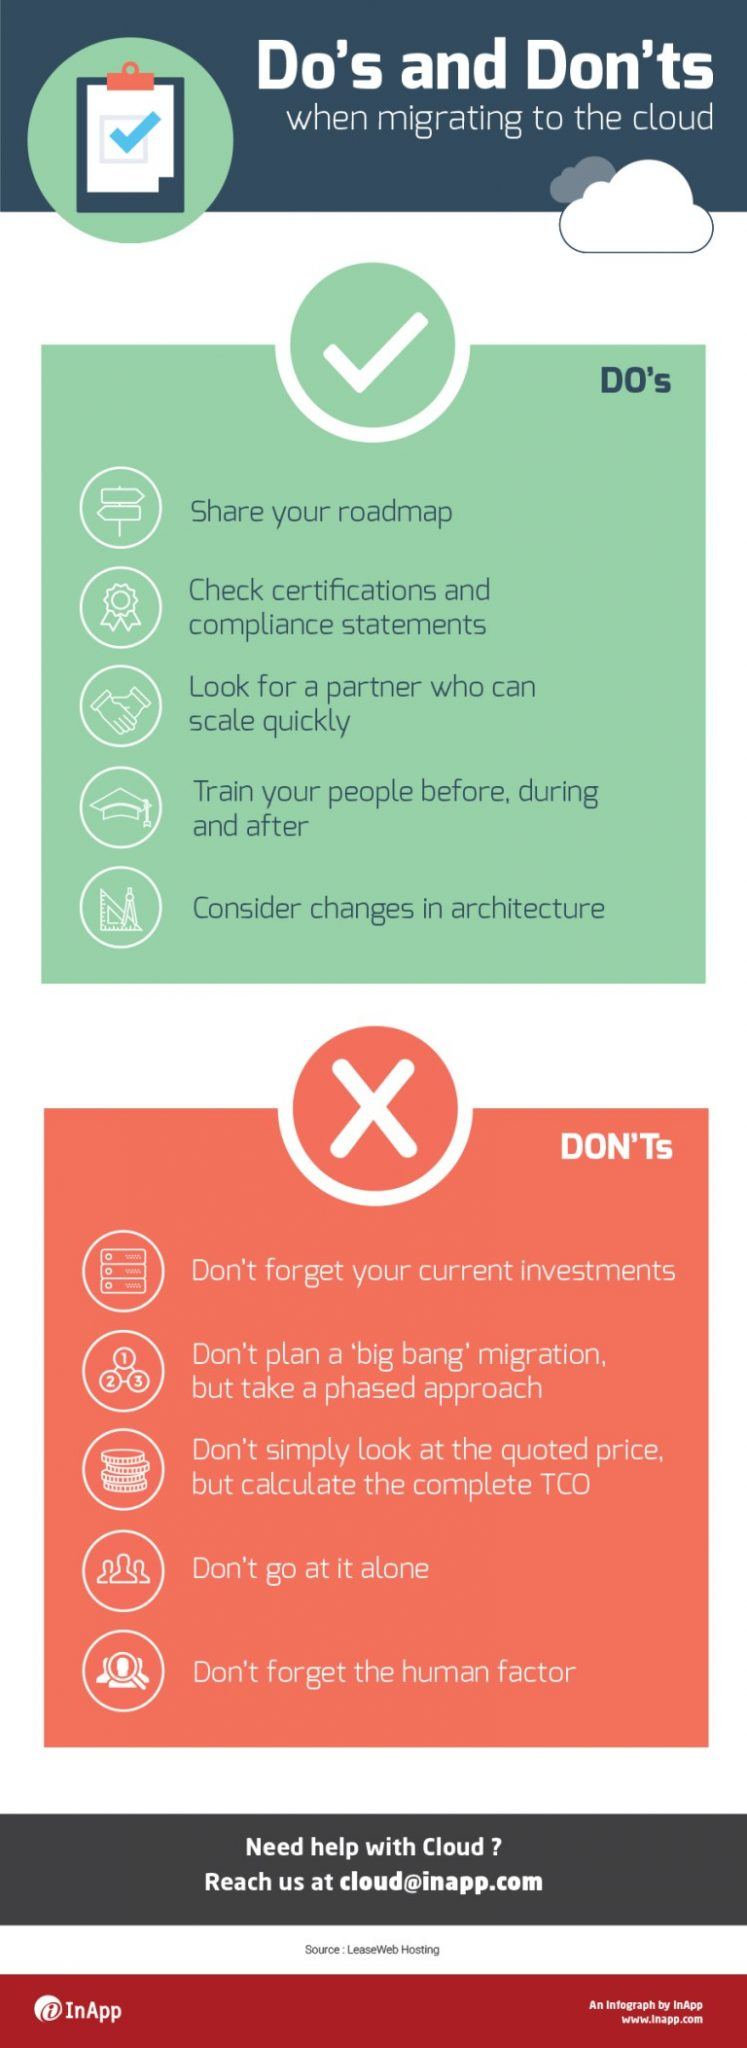 DO'S AND DON'TS WHEN MIGRATING TO THE CLOUD